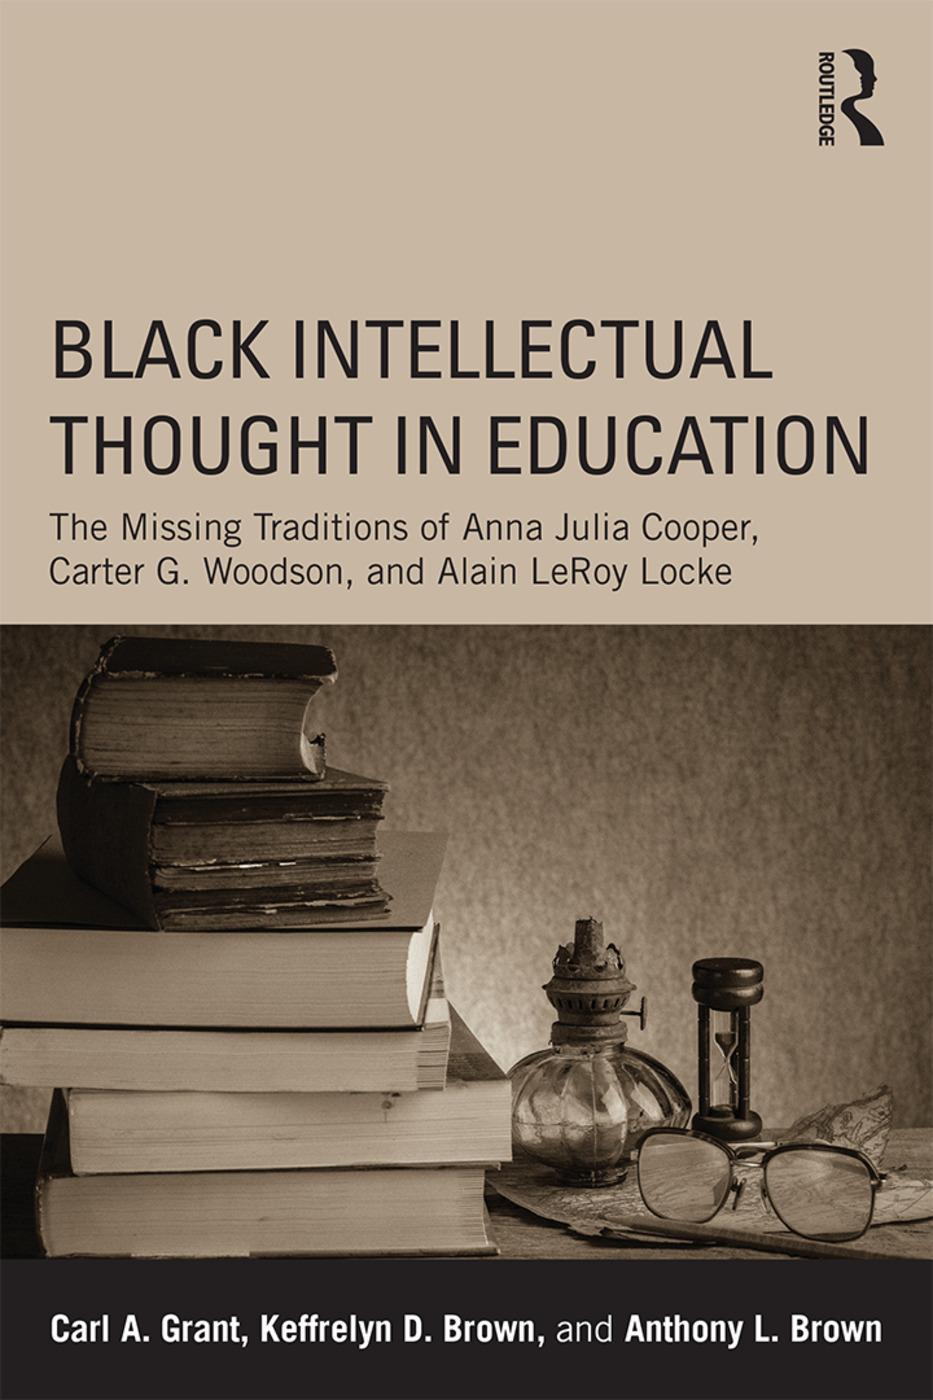 Black Intellectual Thought in Education: The Missing Traditions of Anna Julia Cooper, Carter G. Woodson, and Alain LeRoy Locke (Paperback) book cover